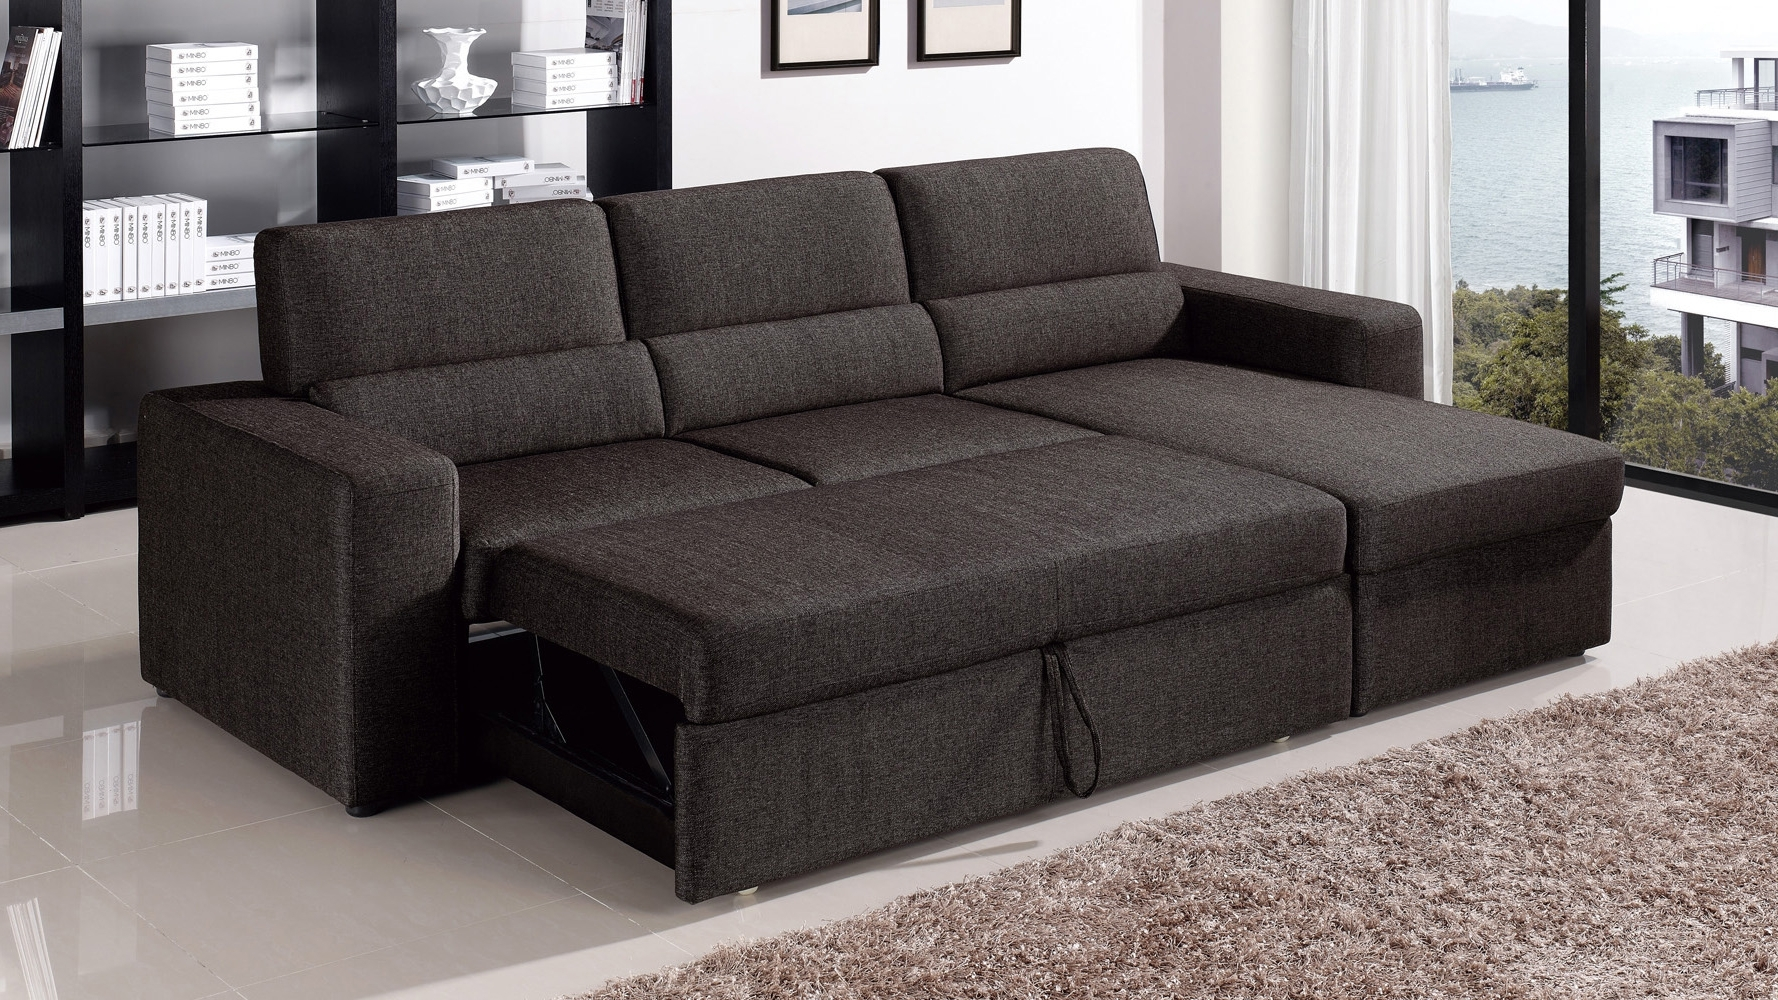 Sleeper Sofa Chaises With Most Recently Released Black/brown Clubber Sleeper Sectional Sofa (View 7 of 15)